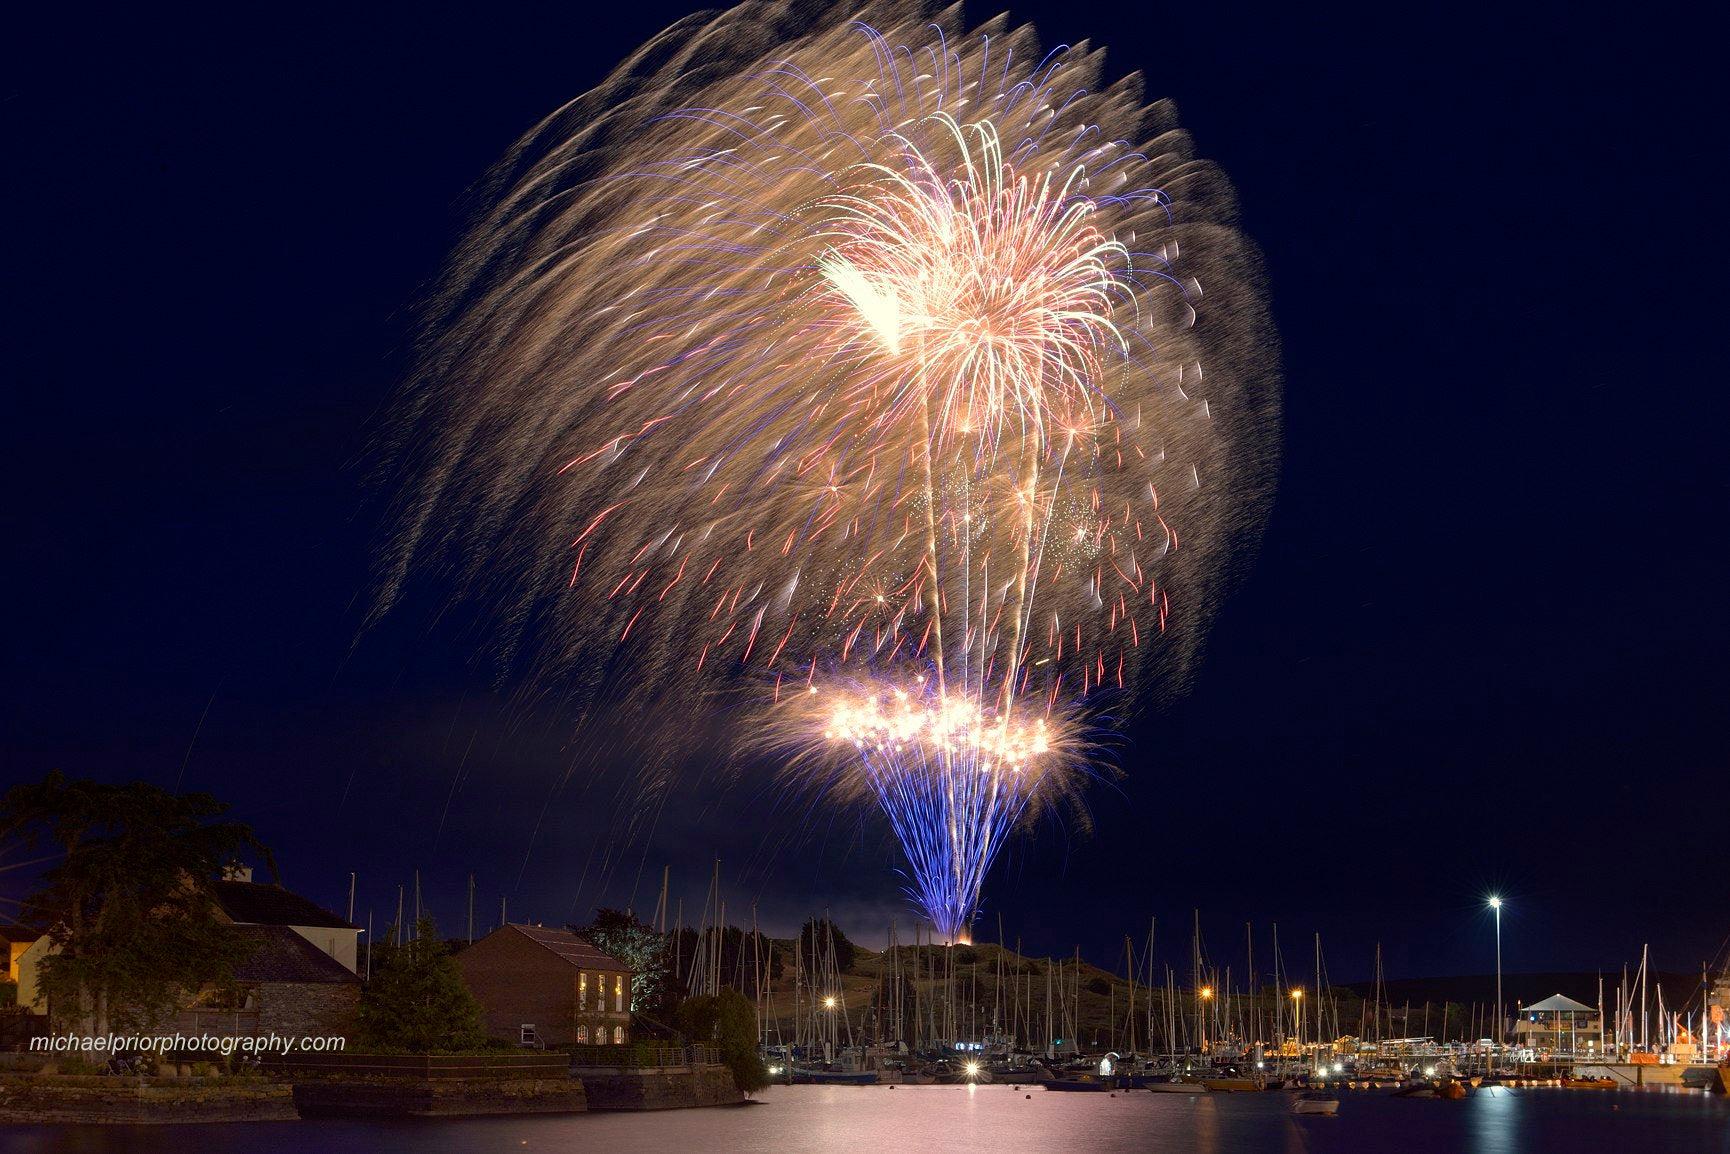 Fireworks Over Kinsale - Michael Prior Photography